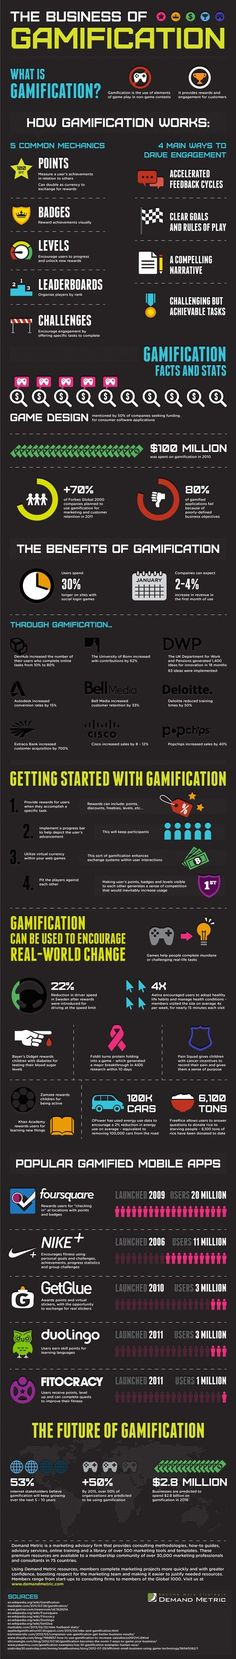 Gamification has quickly become a super trend in marketing, customer retention and employee engagement. Check out this new infographic: The Business of Gamification to learn: what gamification is, how it works, facts and stats, business benefits, and how to get started. #infographic